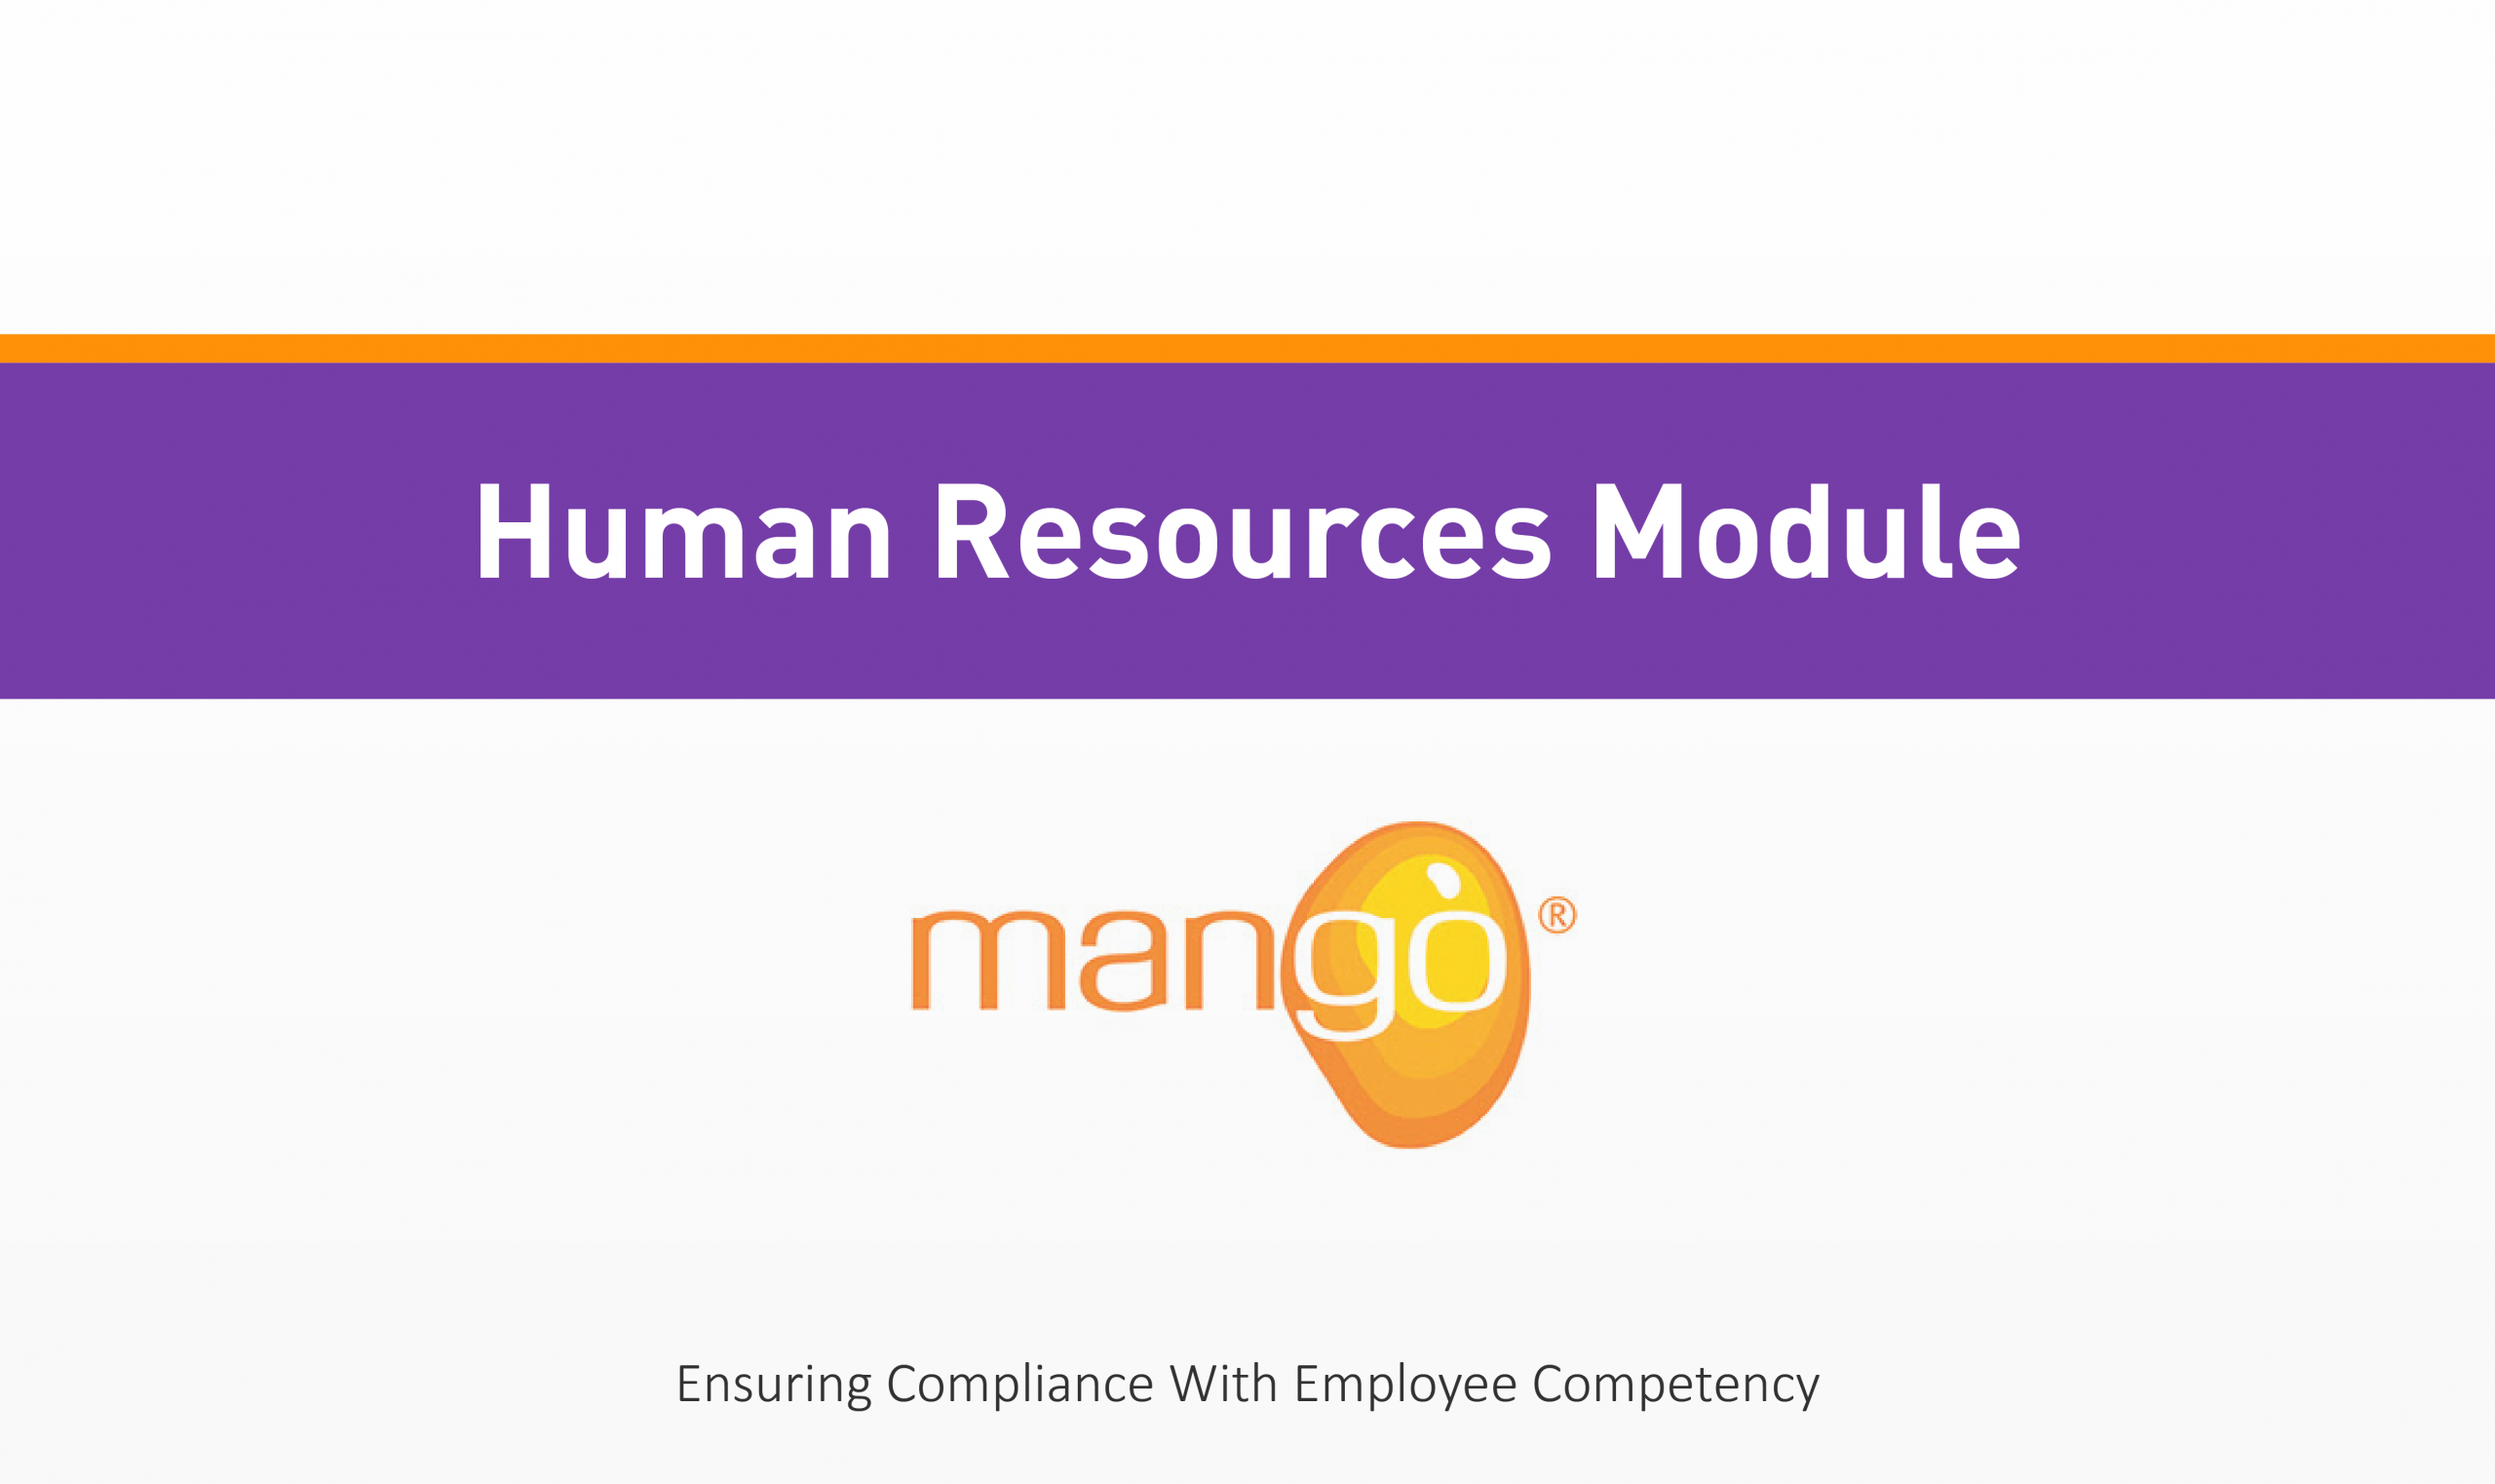 Human Resources Quality Health Safety Environment Management Compliance Services Australia QHSE Consulting And Auditing Mango Compliance Software Solutions